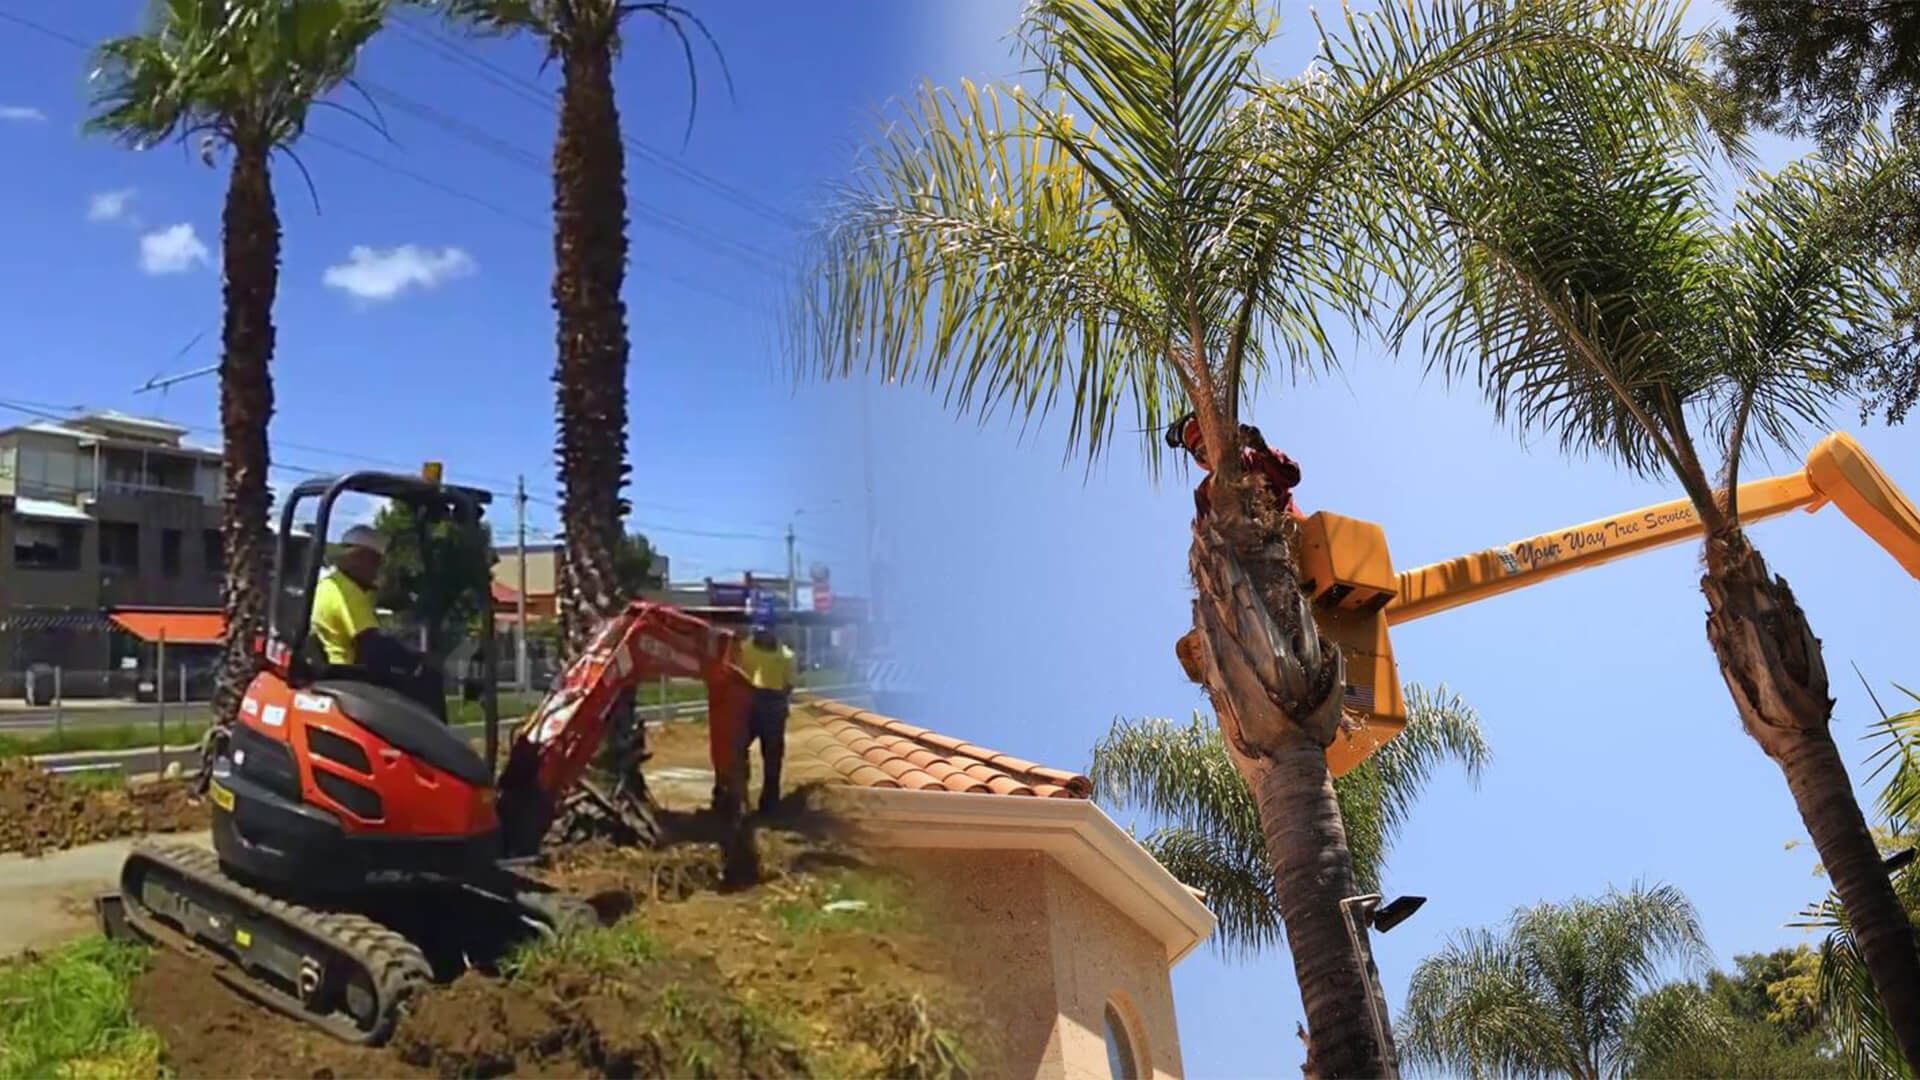 Palm tree trimming & palm tree removal-Lakeland FL Tree Trimming and Stump Grinding Services-We Offer Tree Trimming Services, Tree Removal, Tree Pruning, Tree Cutting, Residential and Commercial Tree Trimming Services, Storm Damage, Emergency Tree Removal, Land Clearing, Tree Companies, Tree Care Service, Stump Grinding, and we're the Best Tree Trimming Company Near You Guaranteed!